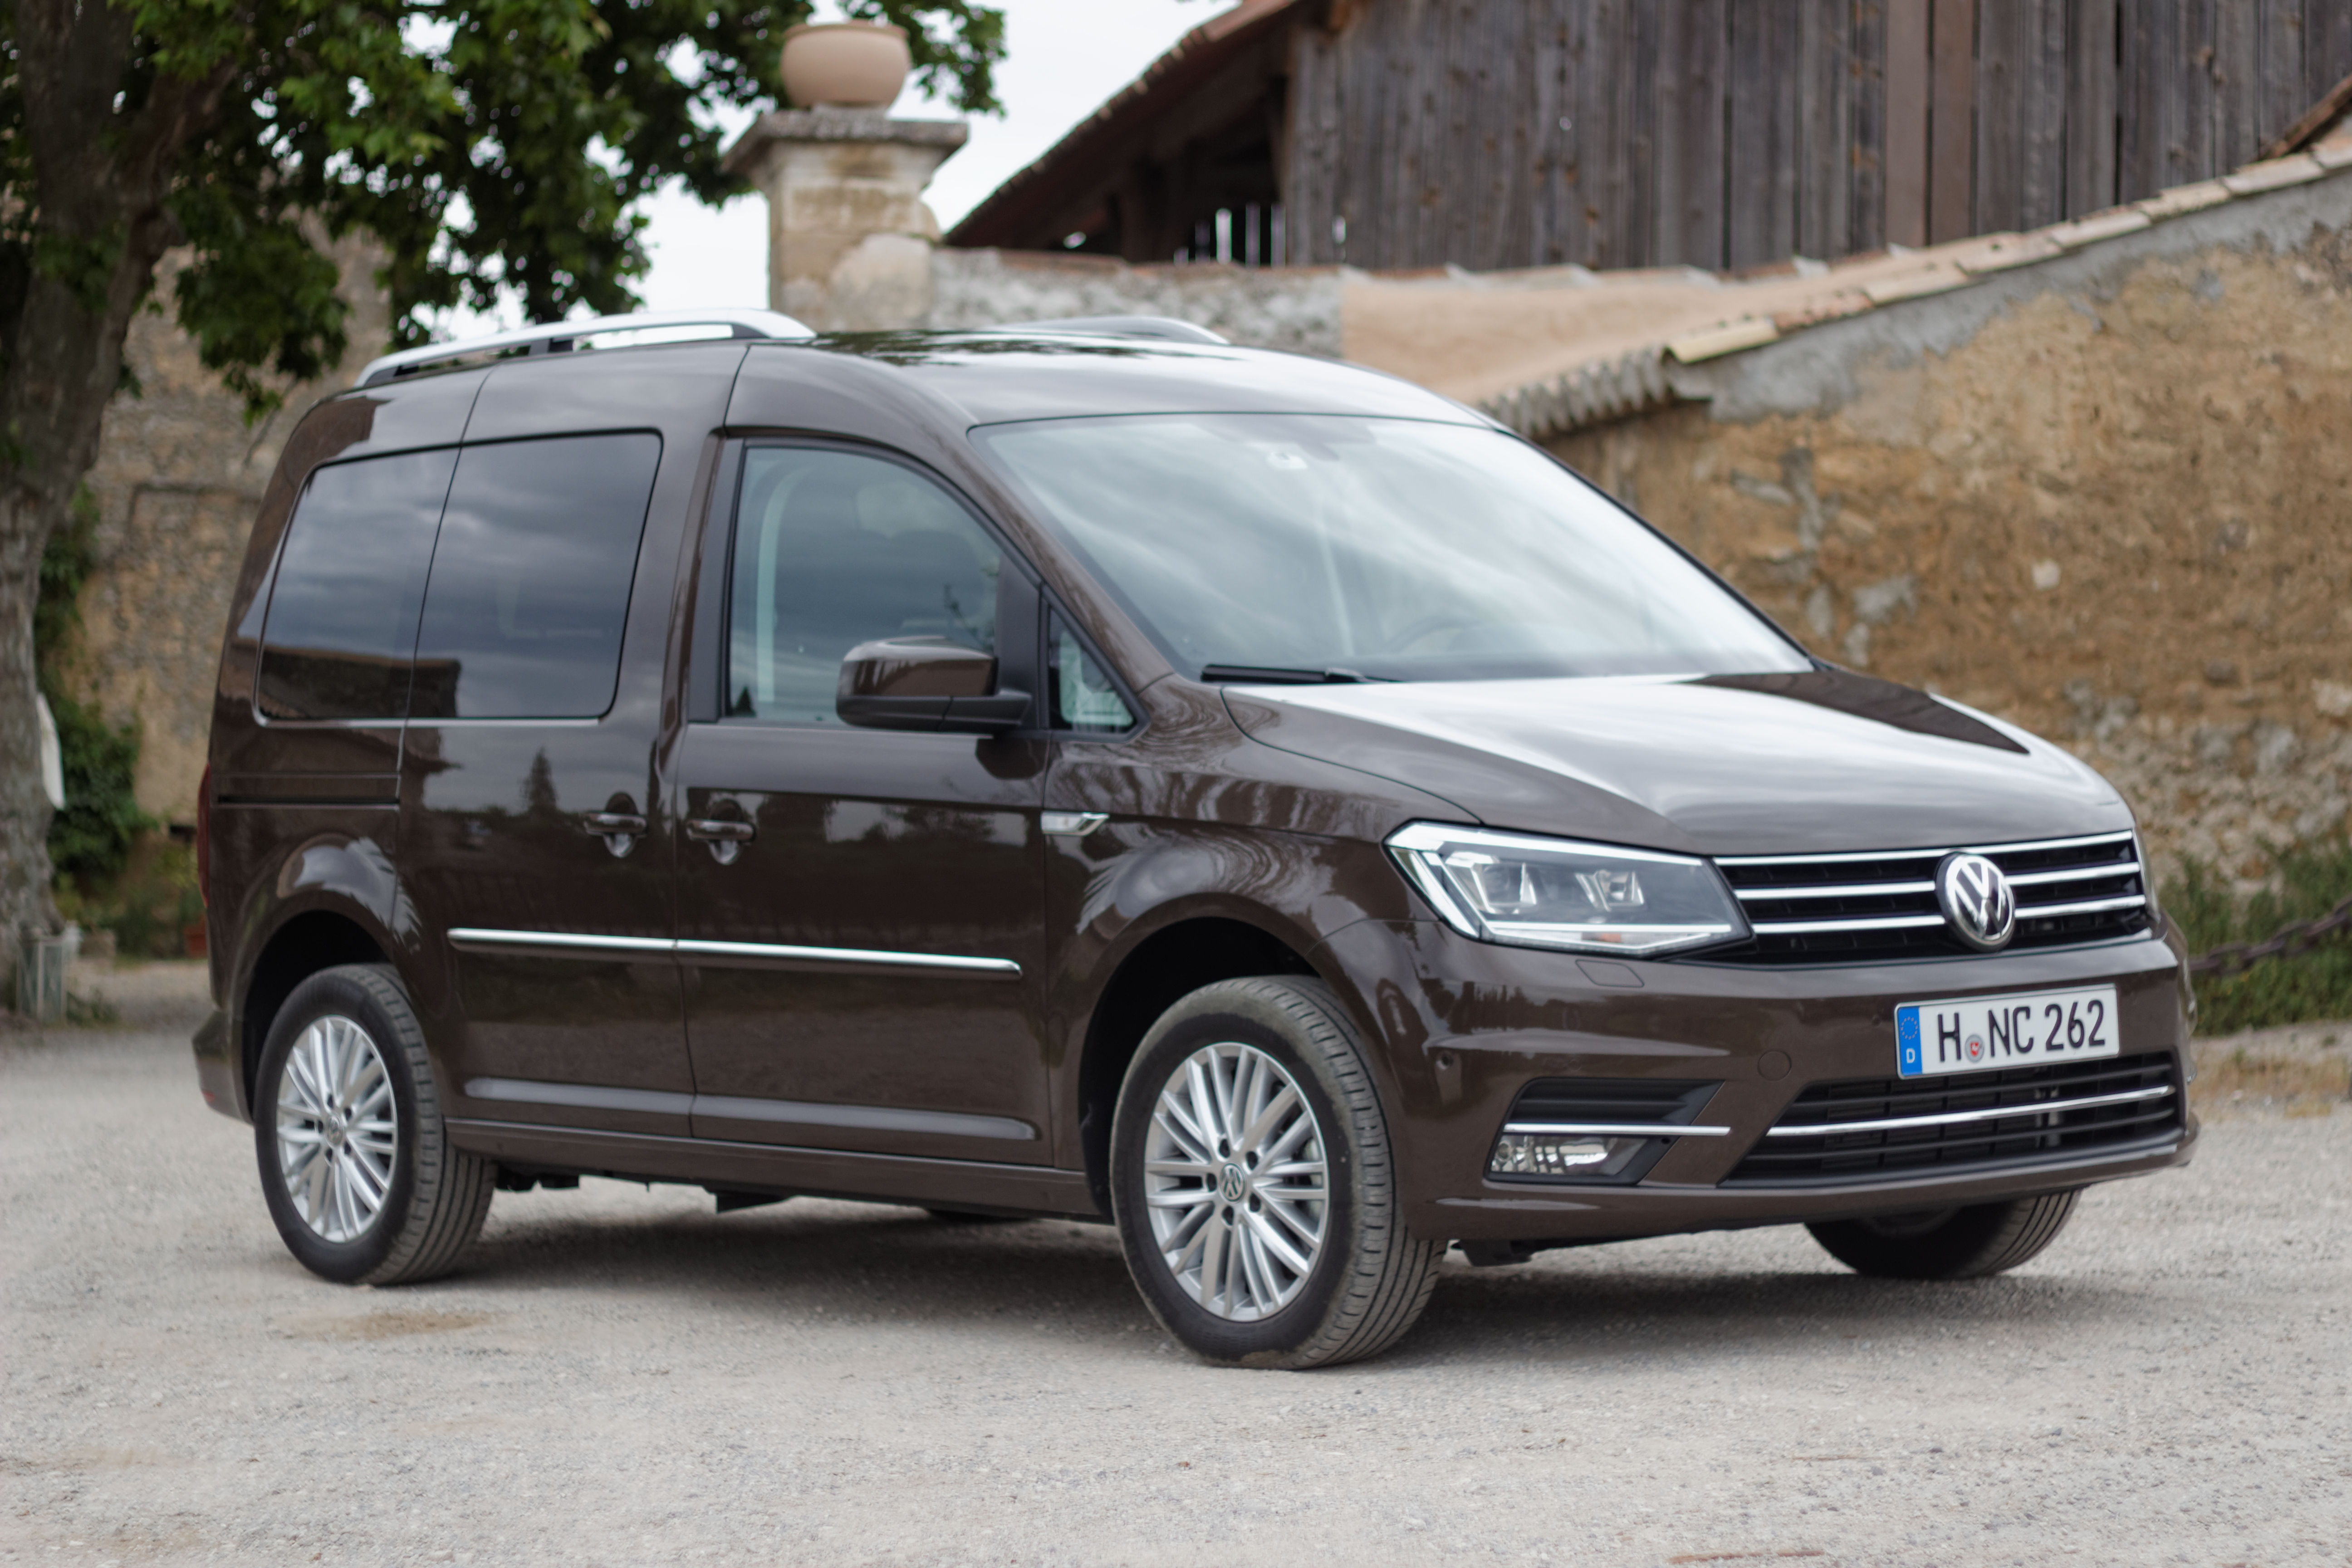 photos volkswagen caddy 4. Black Bedroom Furniture Sets. Home Design Ideas